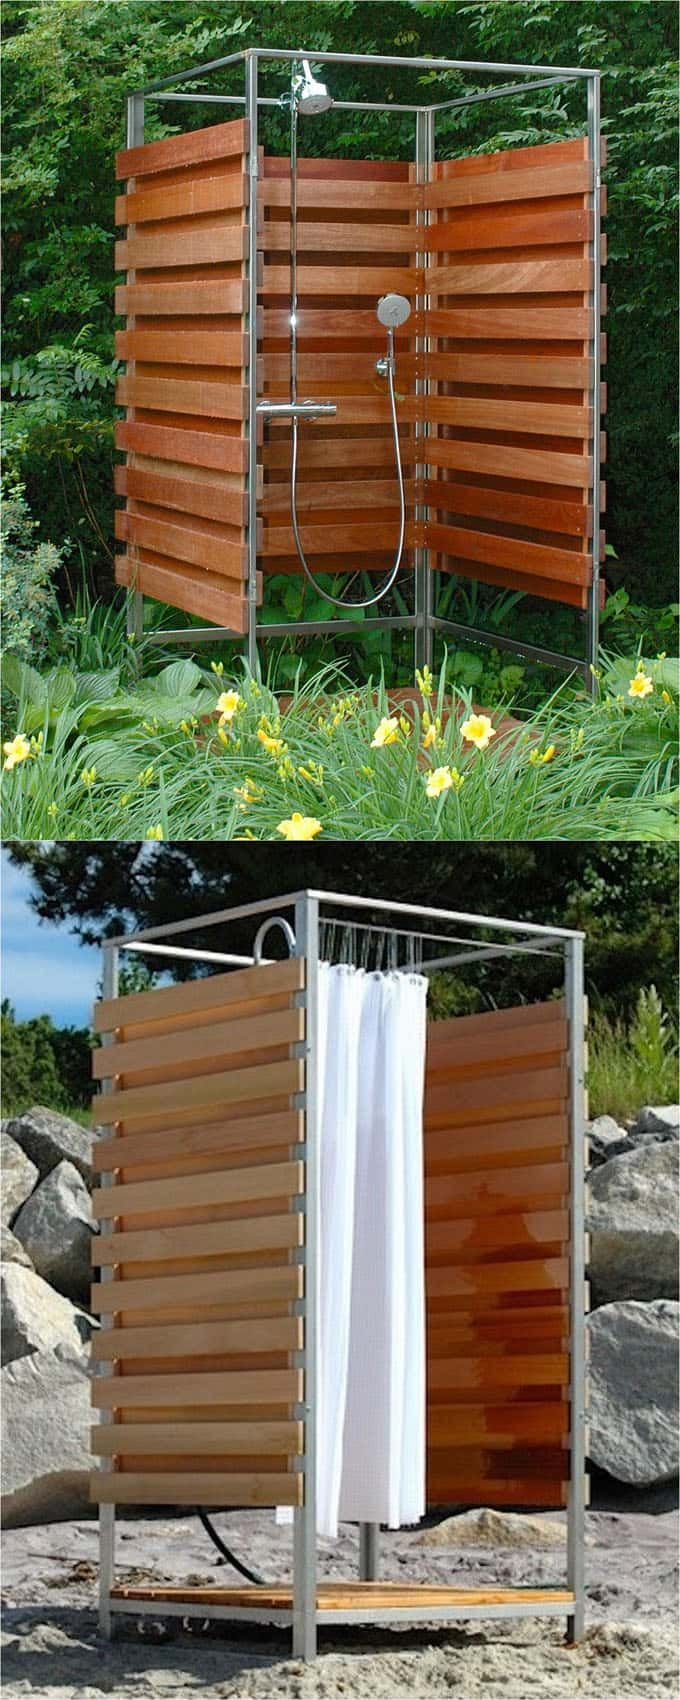 25 best ideas about outdoor shower fixtures on pinterest outdoor showers garden shower and. Black Bedroom Furniture Sets. Home Design Ideas